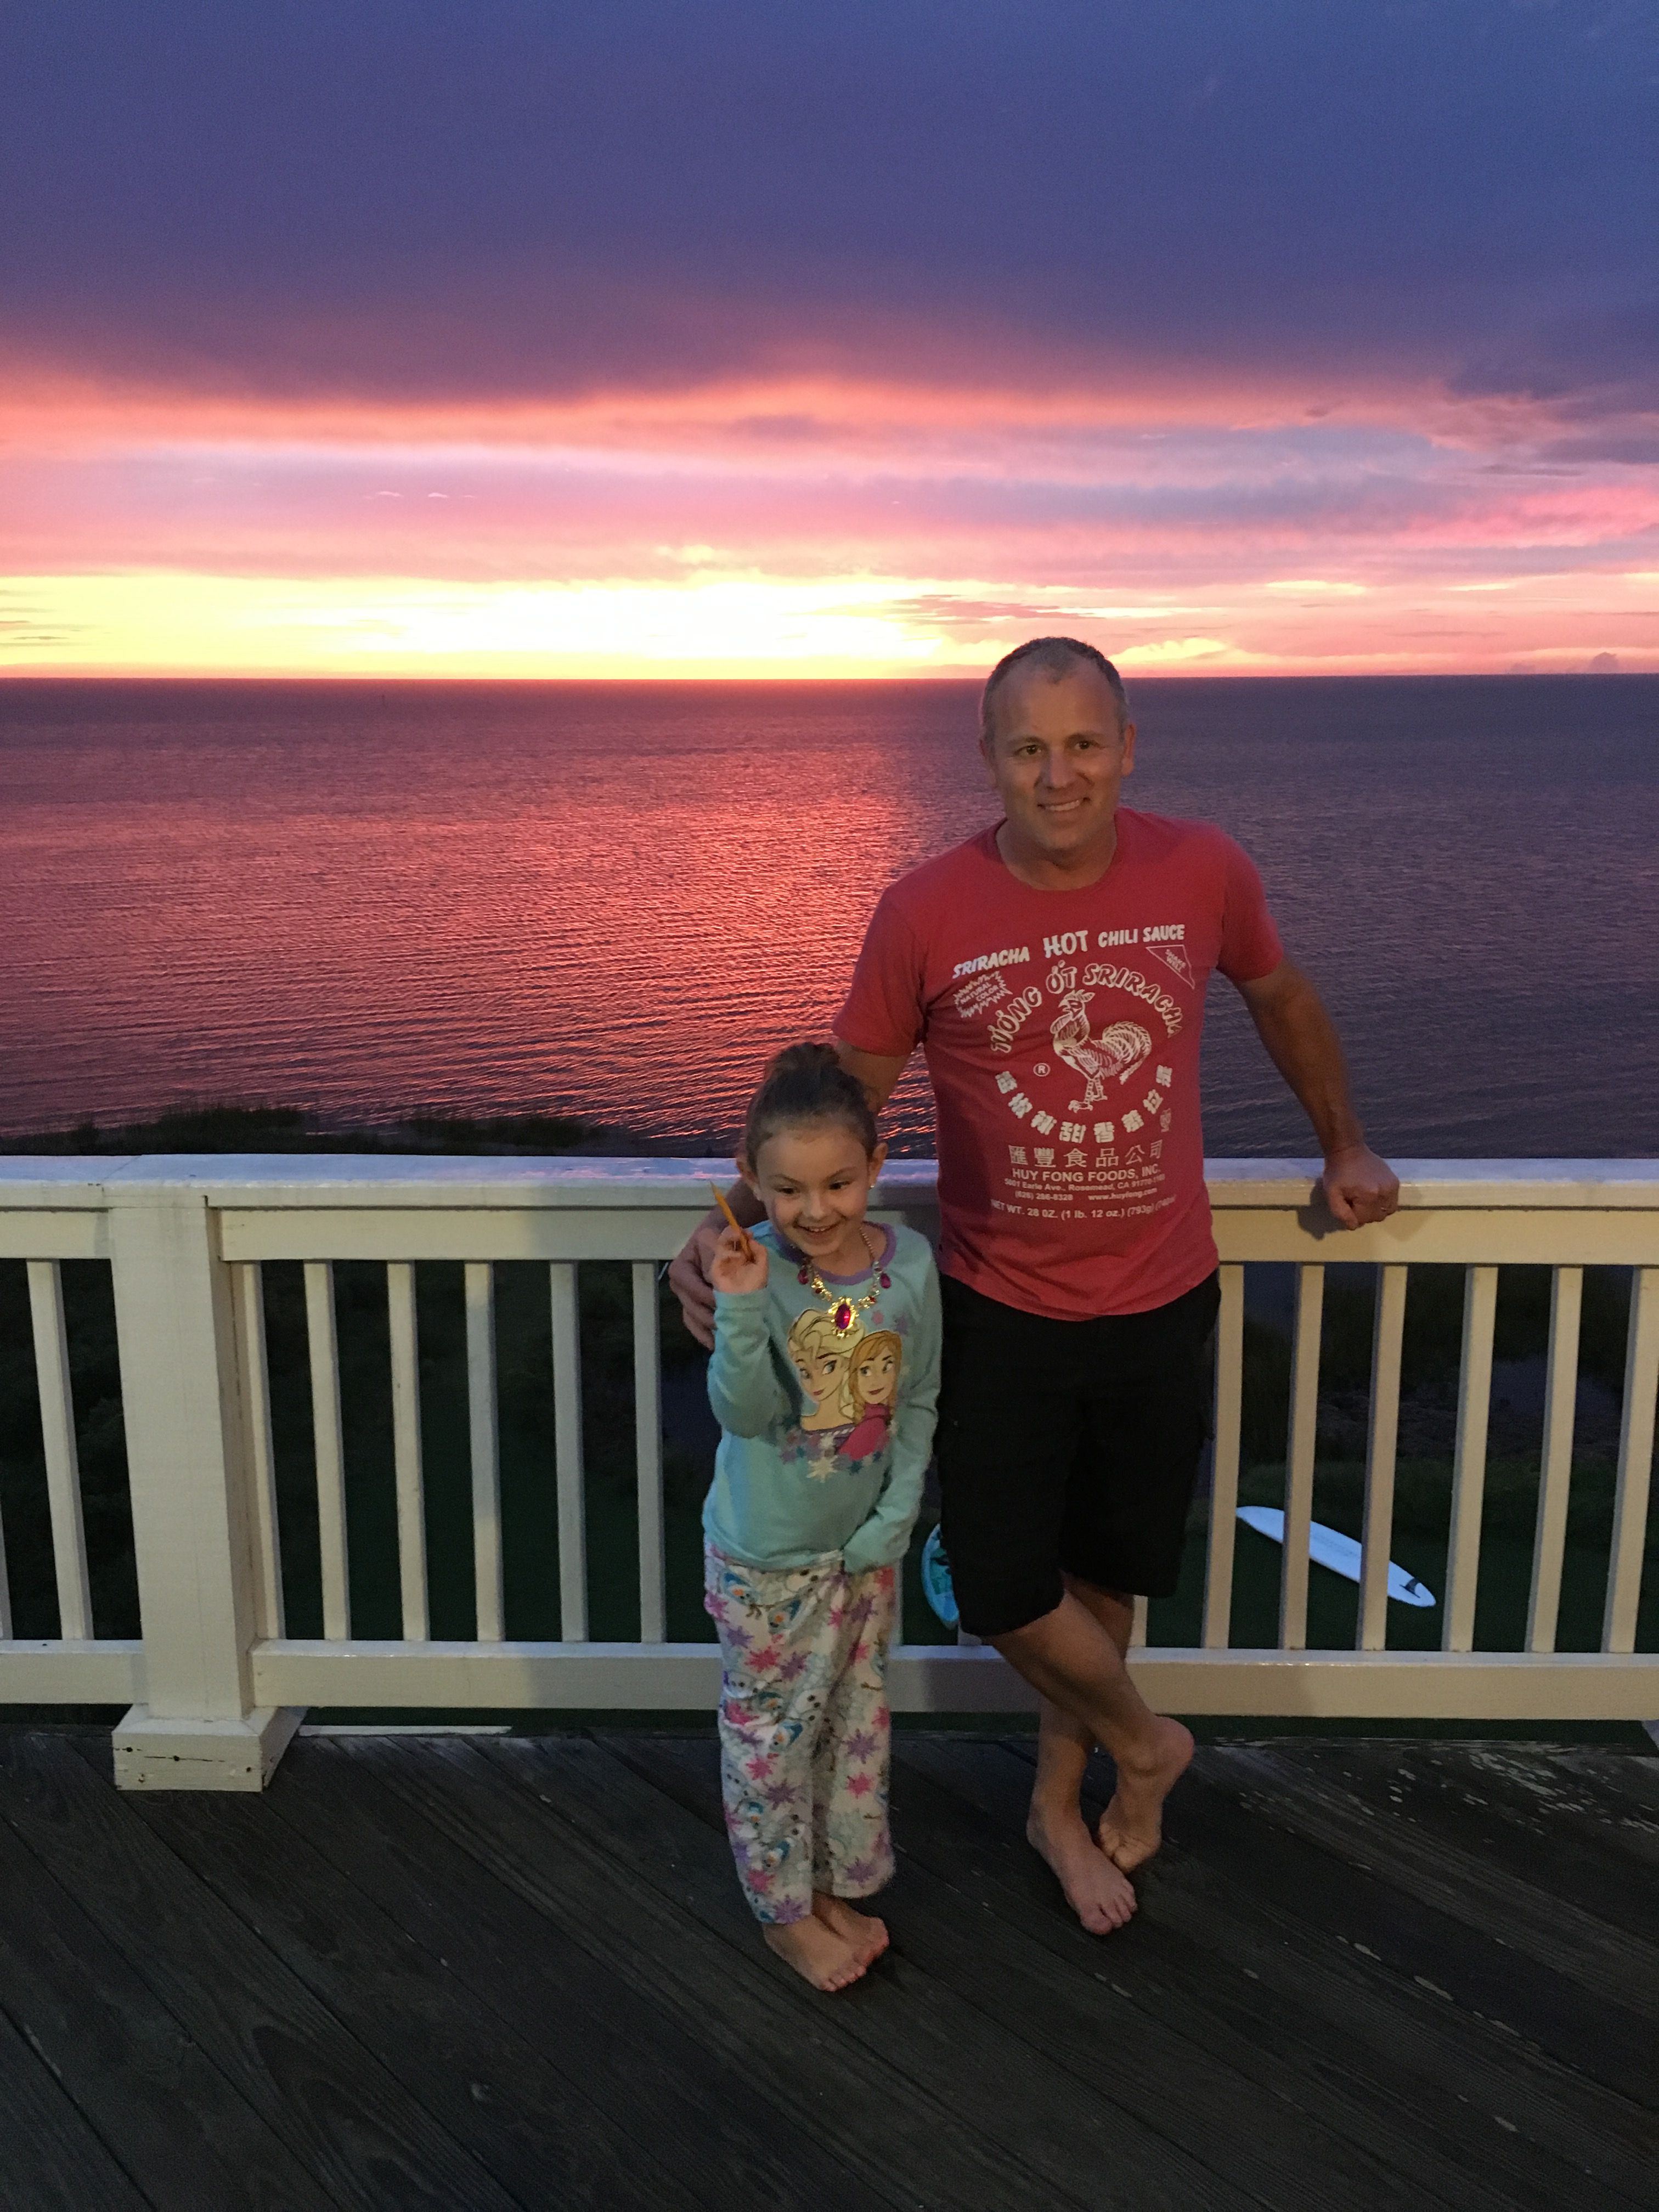 Whitney Renee' Anderson*** obx vacation #sunsets#family#memories